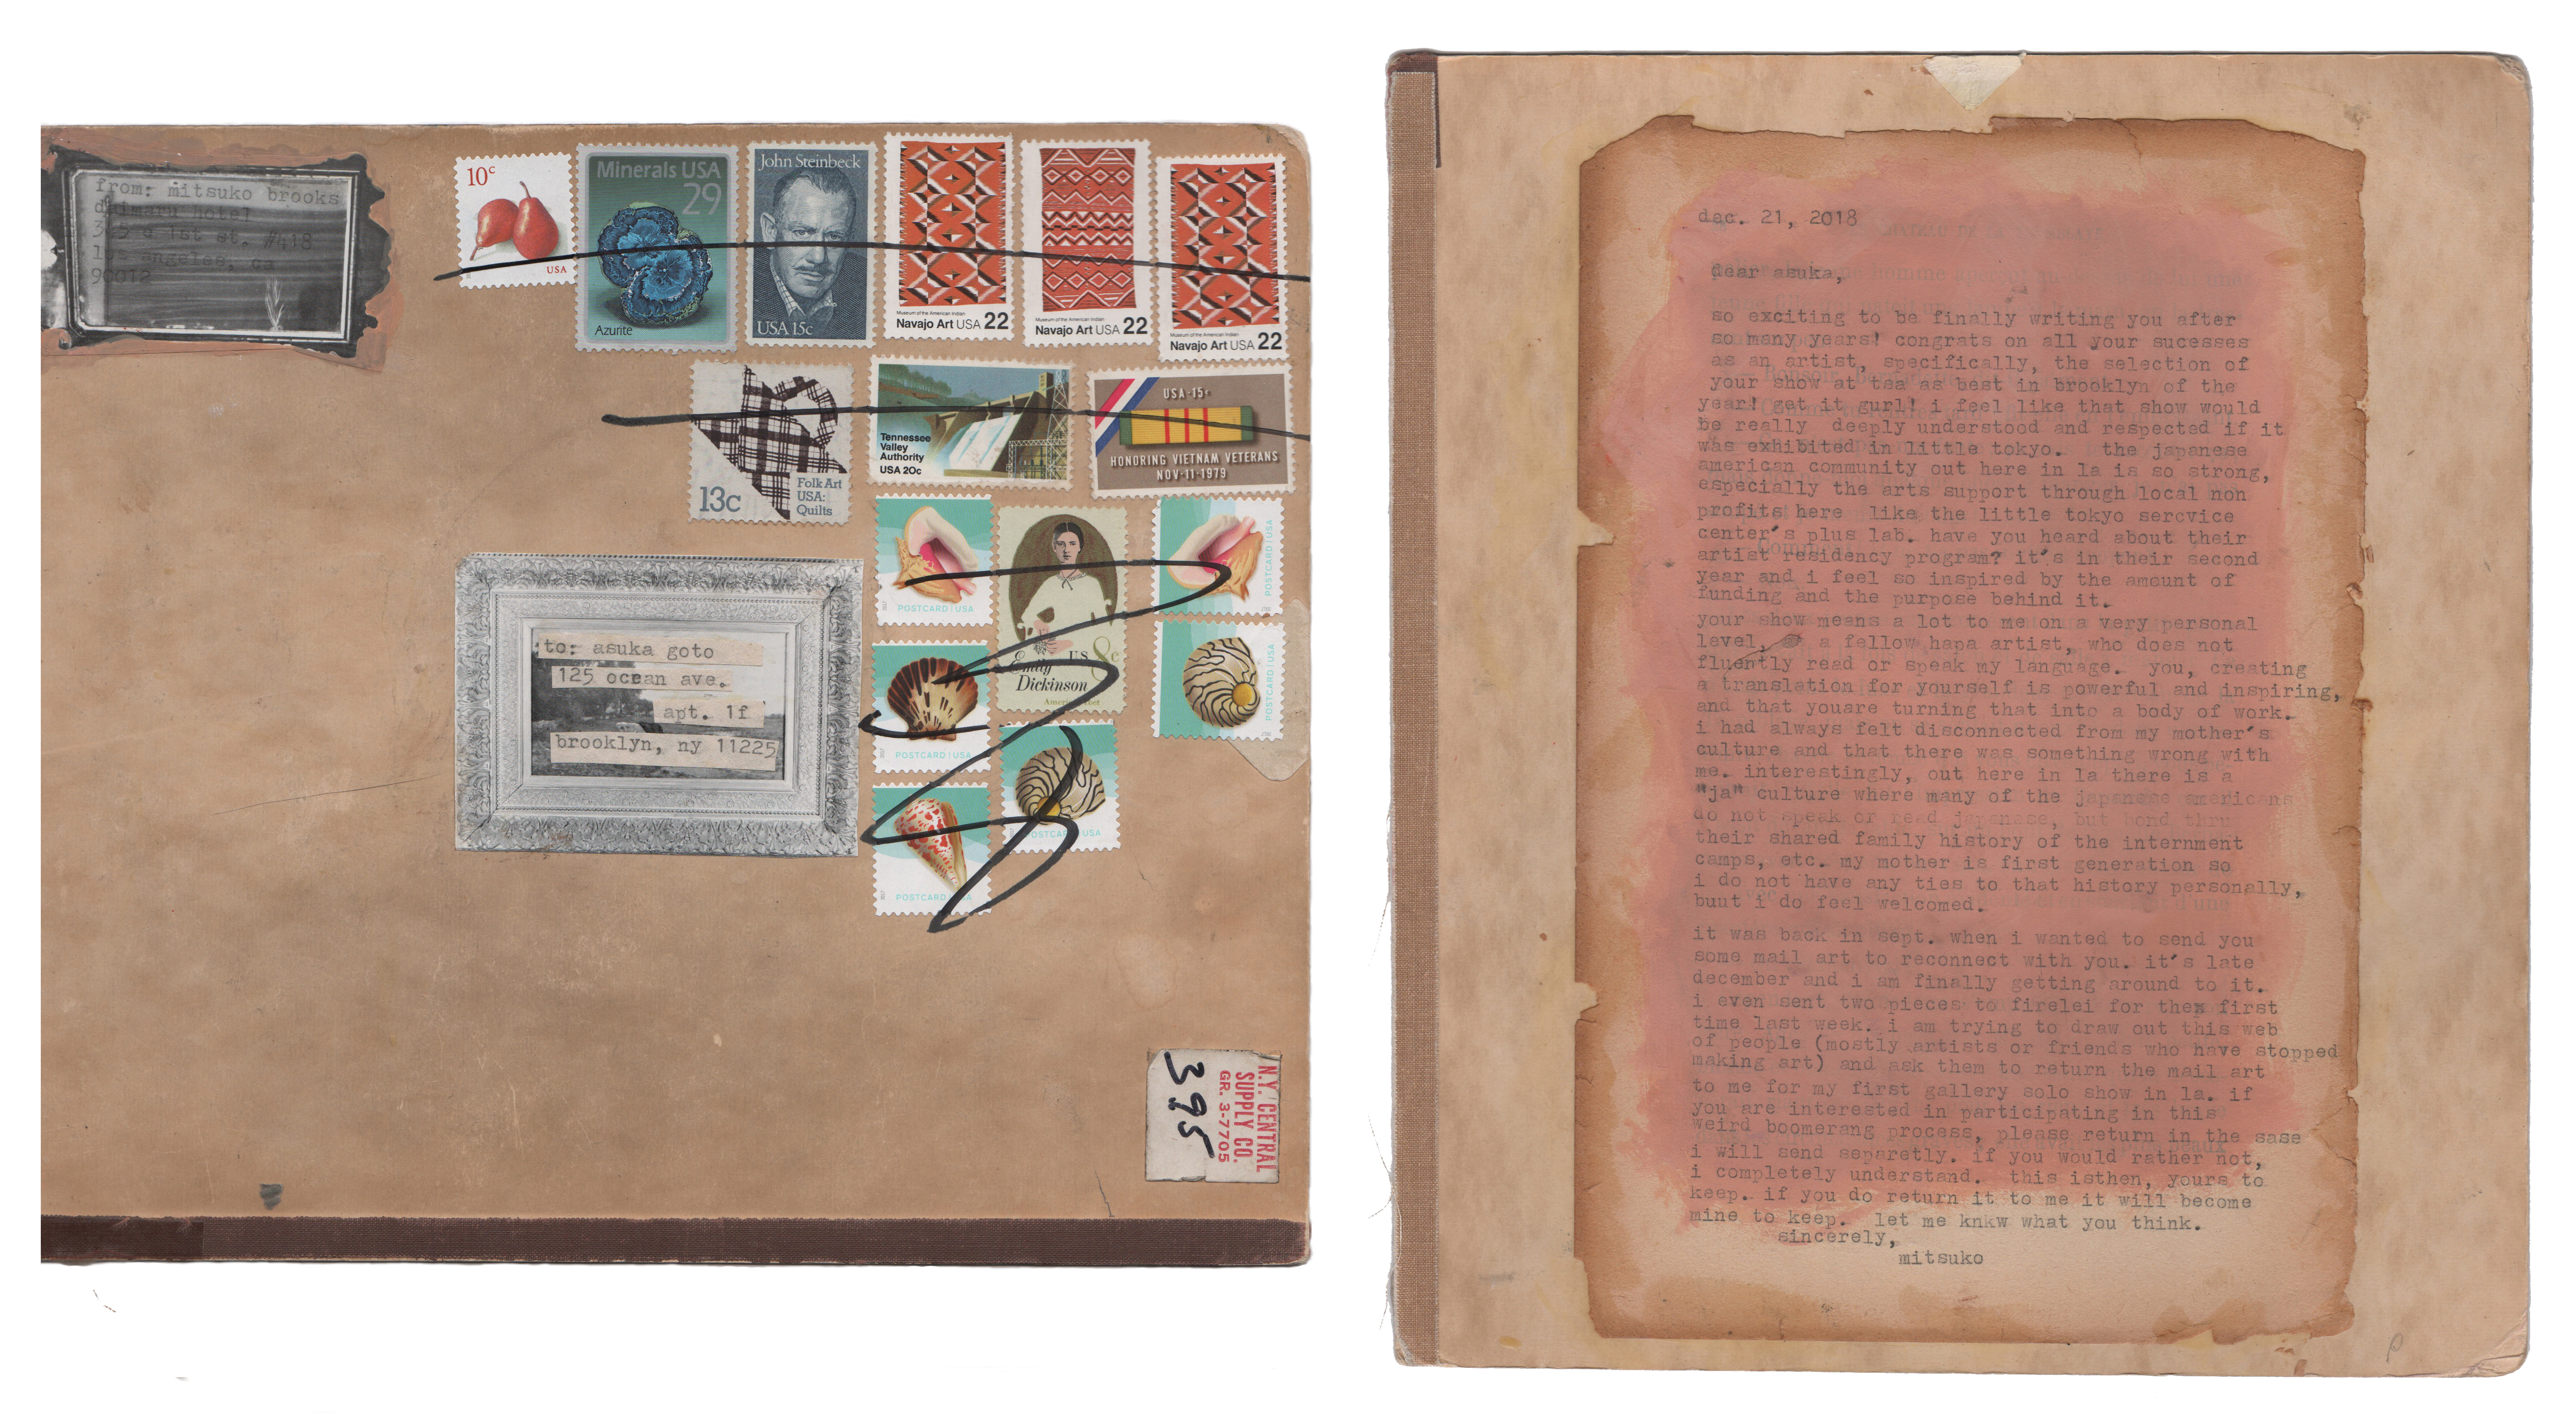 Mitsuko Brooks. <em>Mail to A.G., Dec. 22, 2018</em>, 2018. Ink, postage stamps, and paper collaged onto detached book cover, 10 x 8 5/8 inches (25.5 x 22 cm)